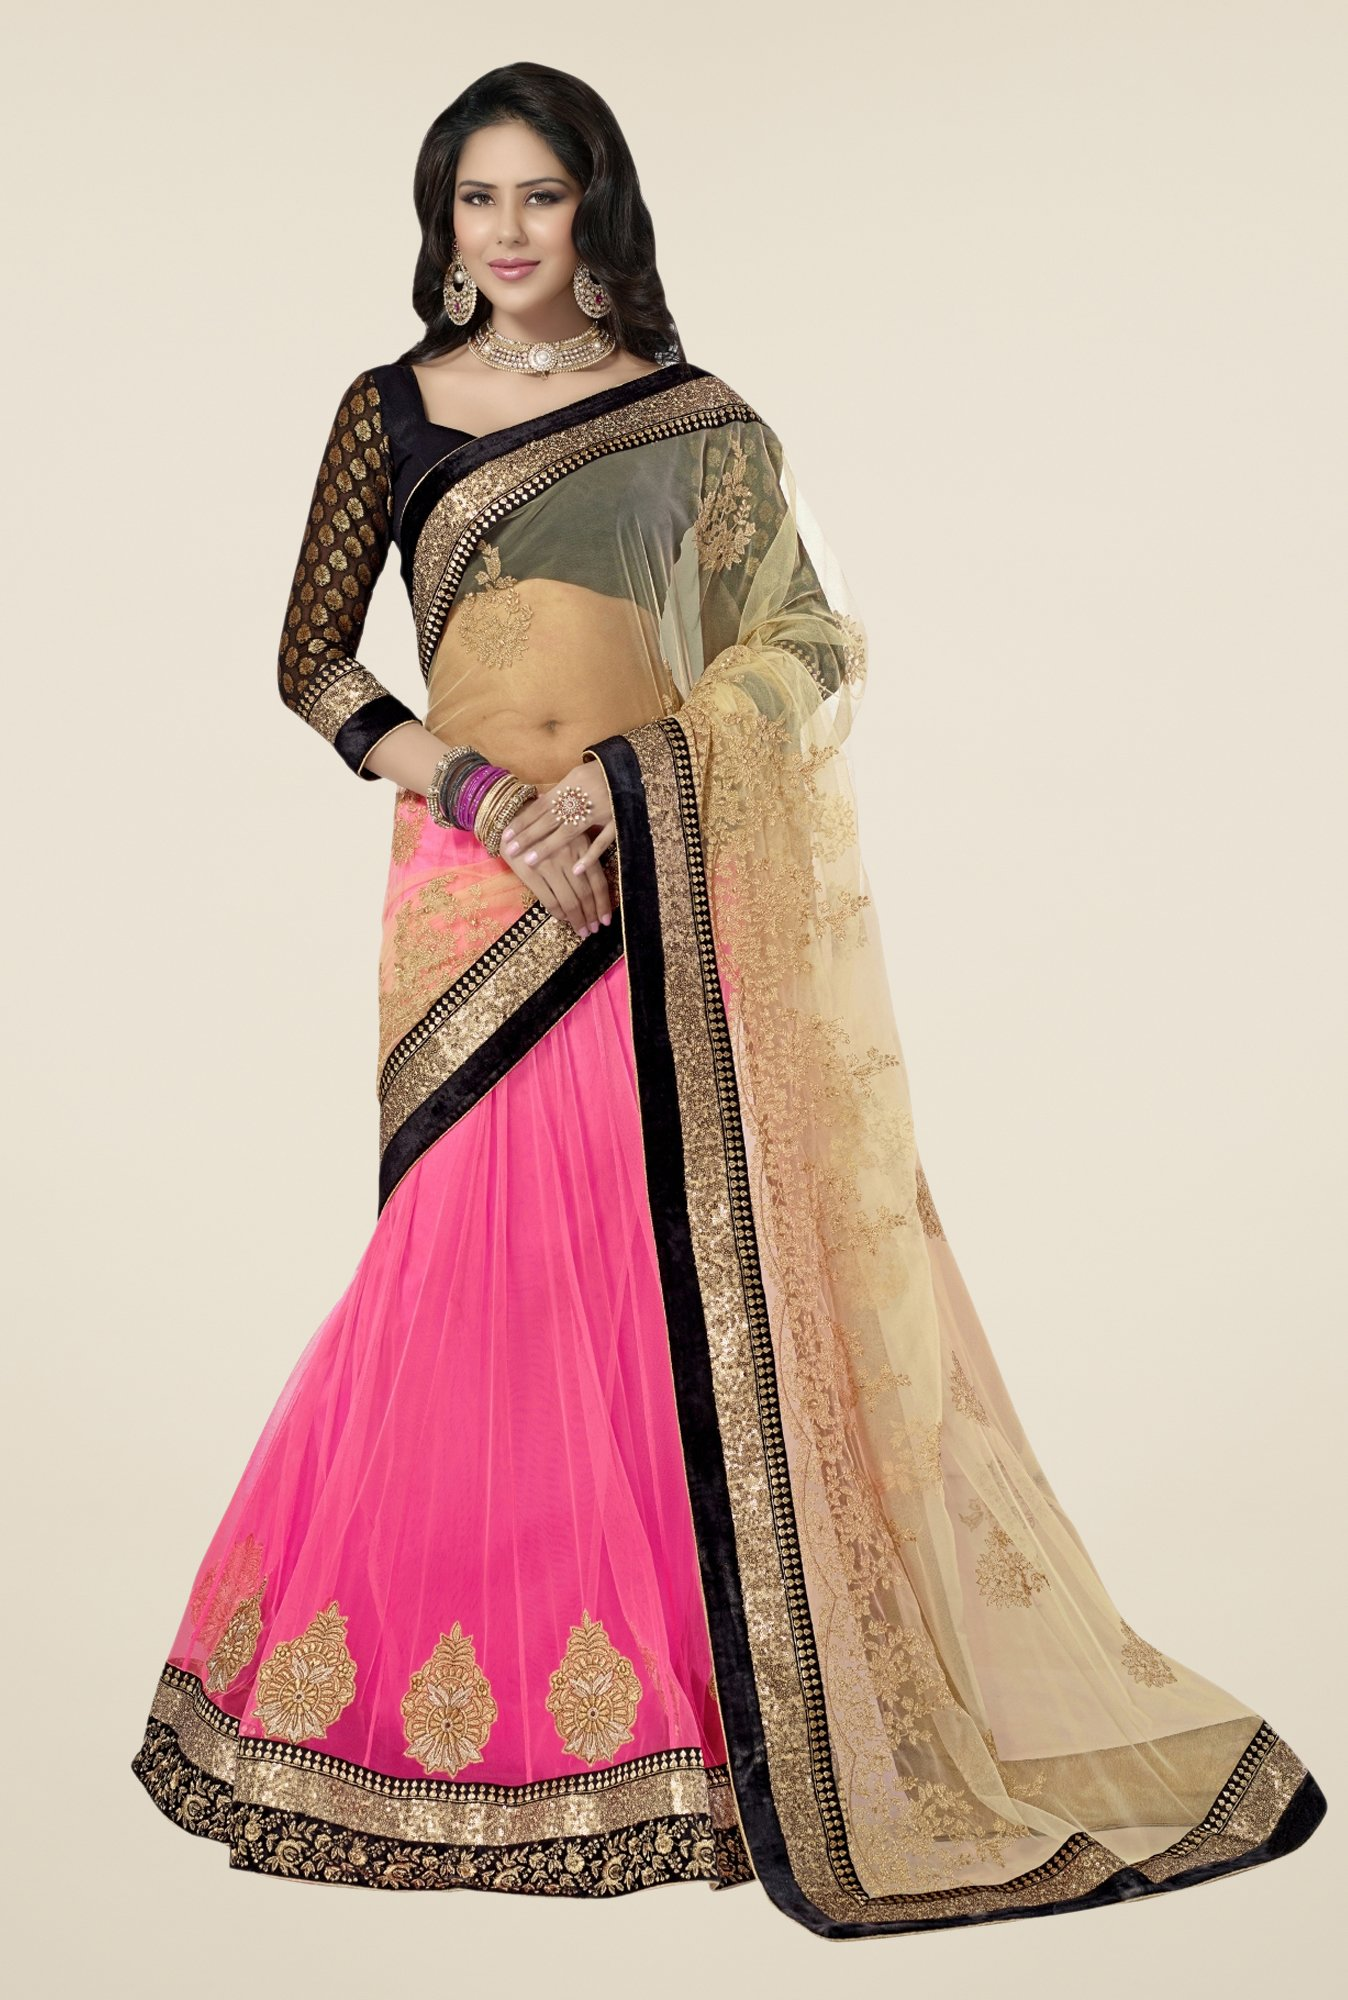 Triveni Pink & Beige Embroidered Net Saree